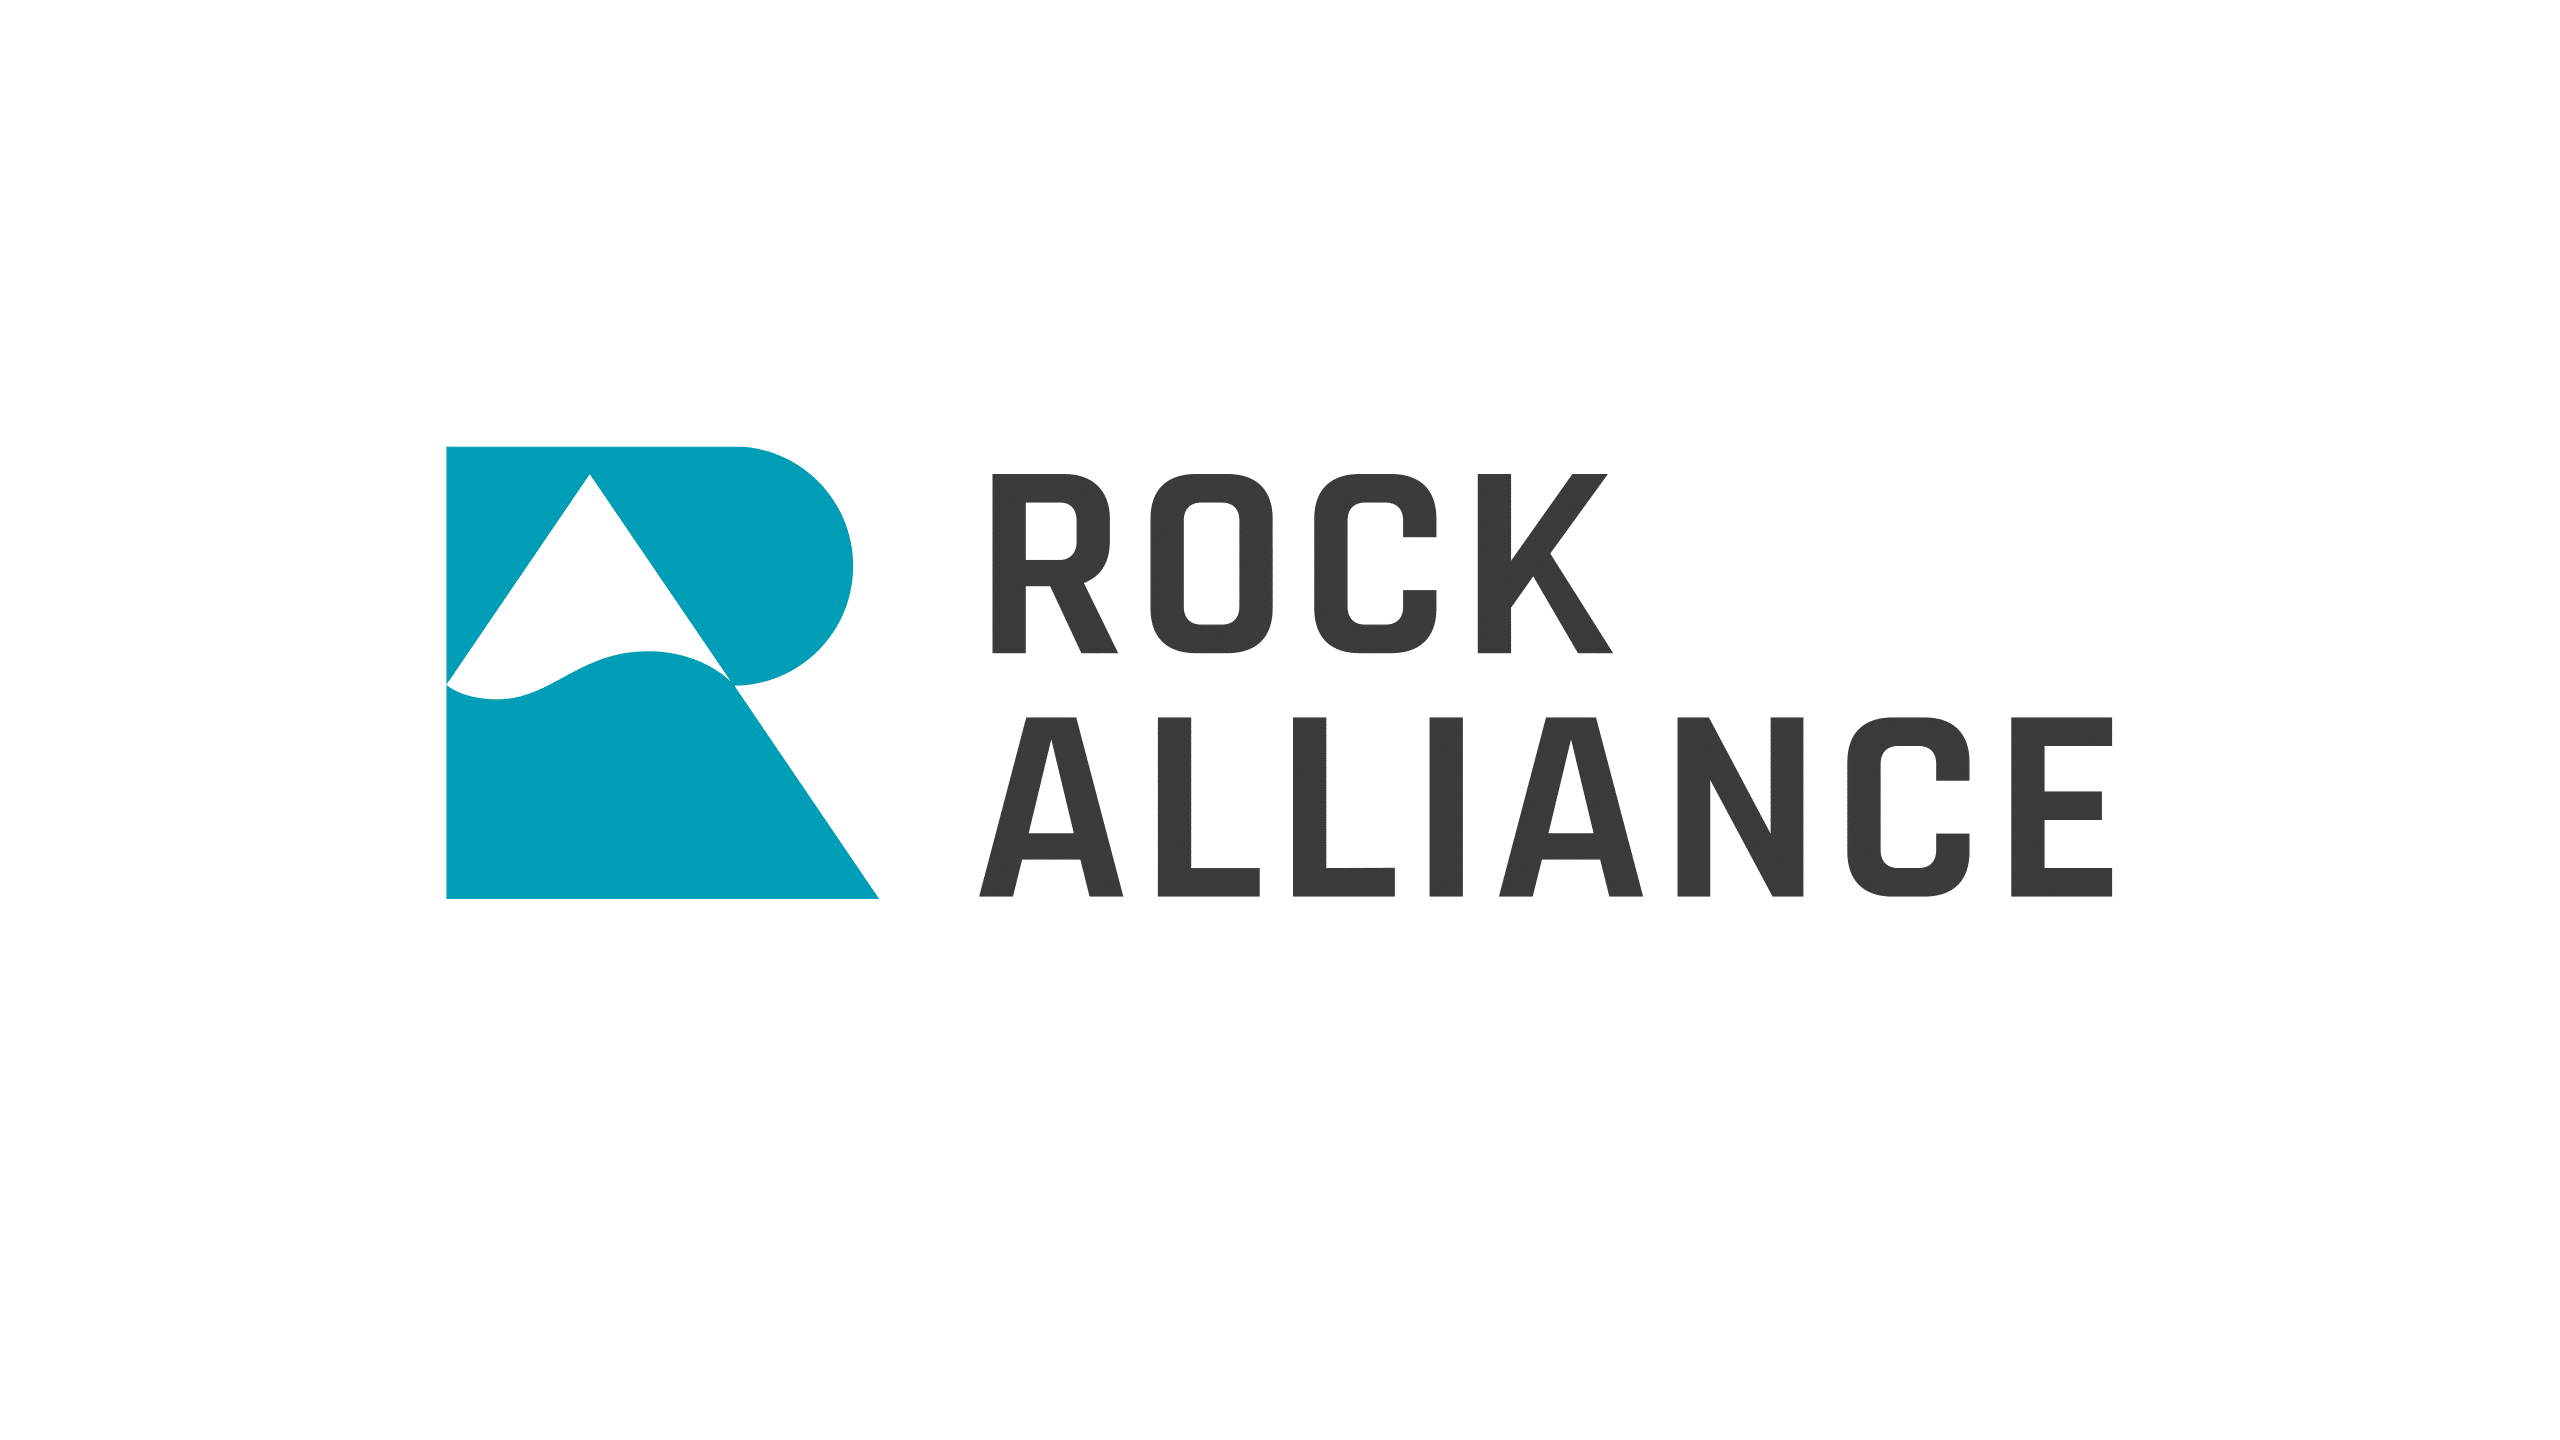 Final logo for Rock Alliance.